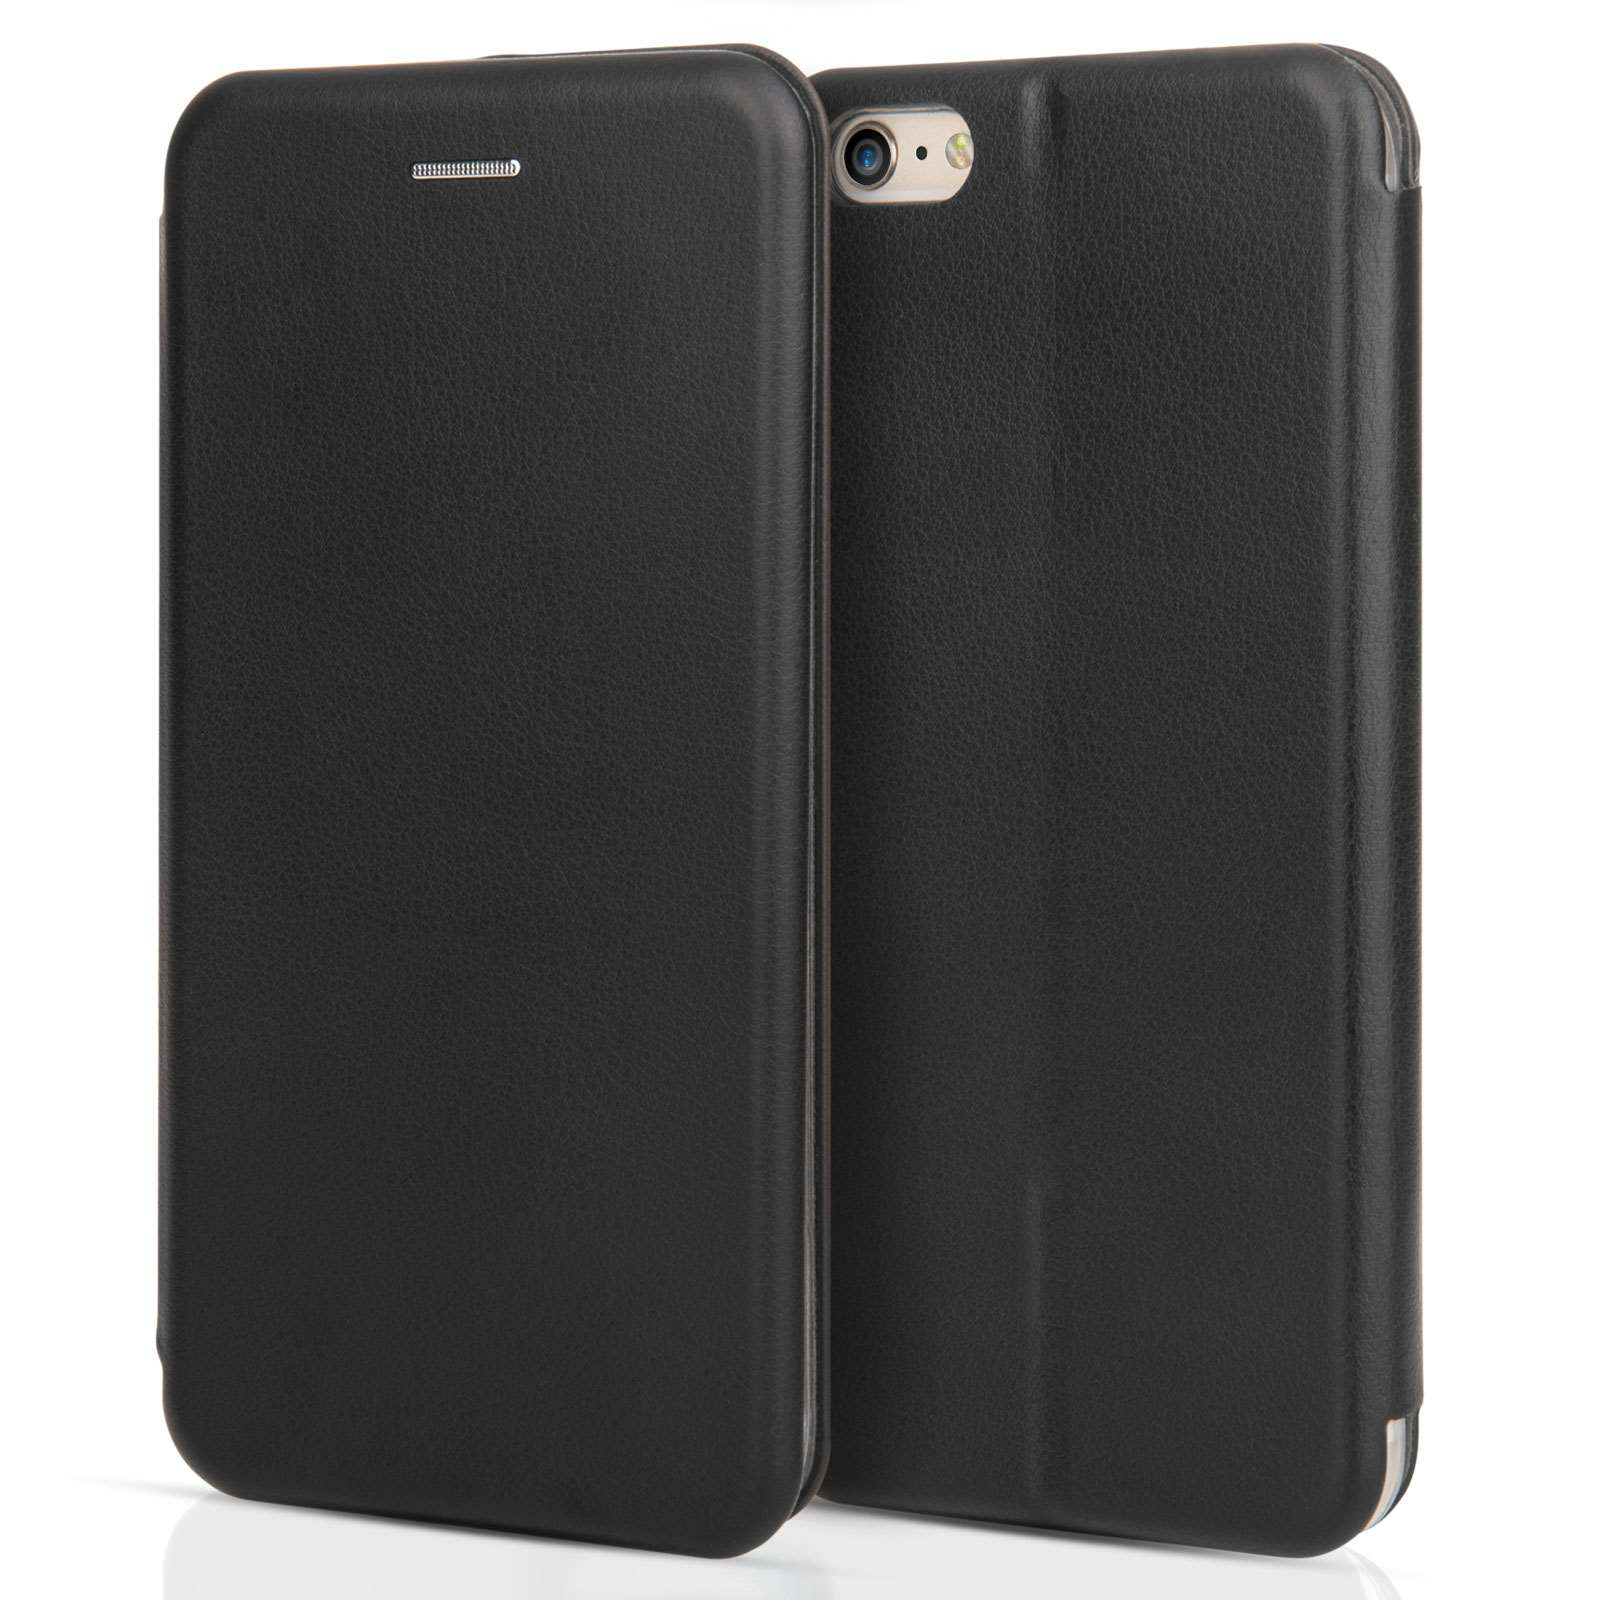 Centopi Θήκη - Πορτοφόλι iPhone 6 Plus / 6S Plus - Black (CEN-APP-043)